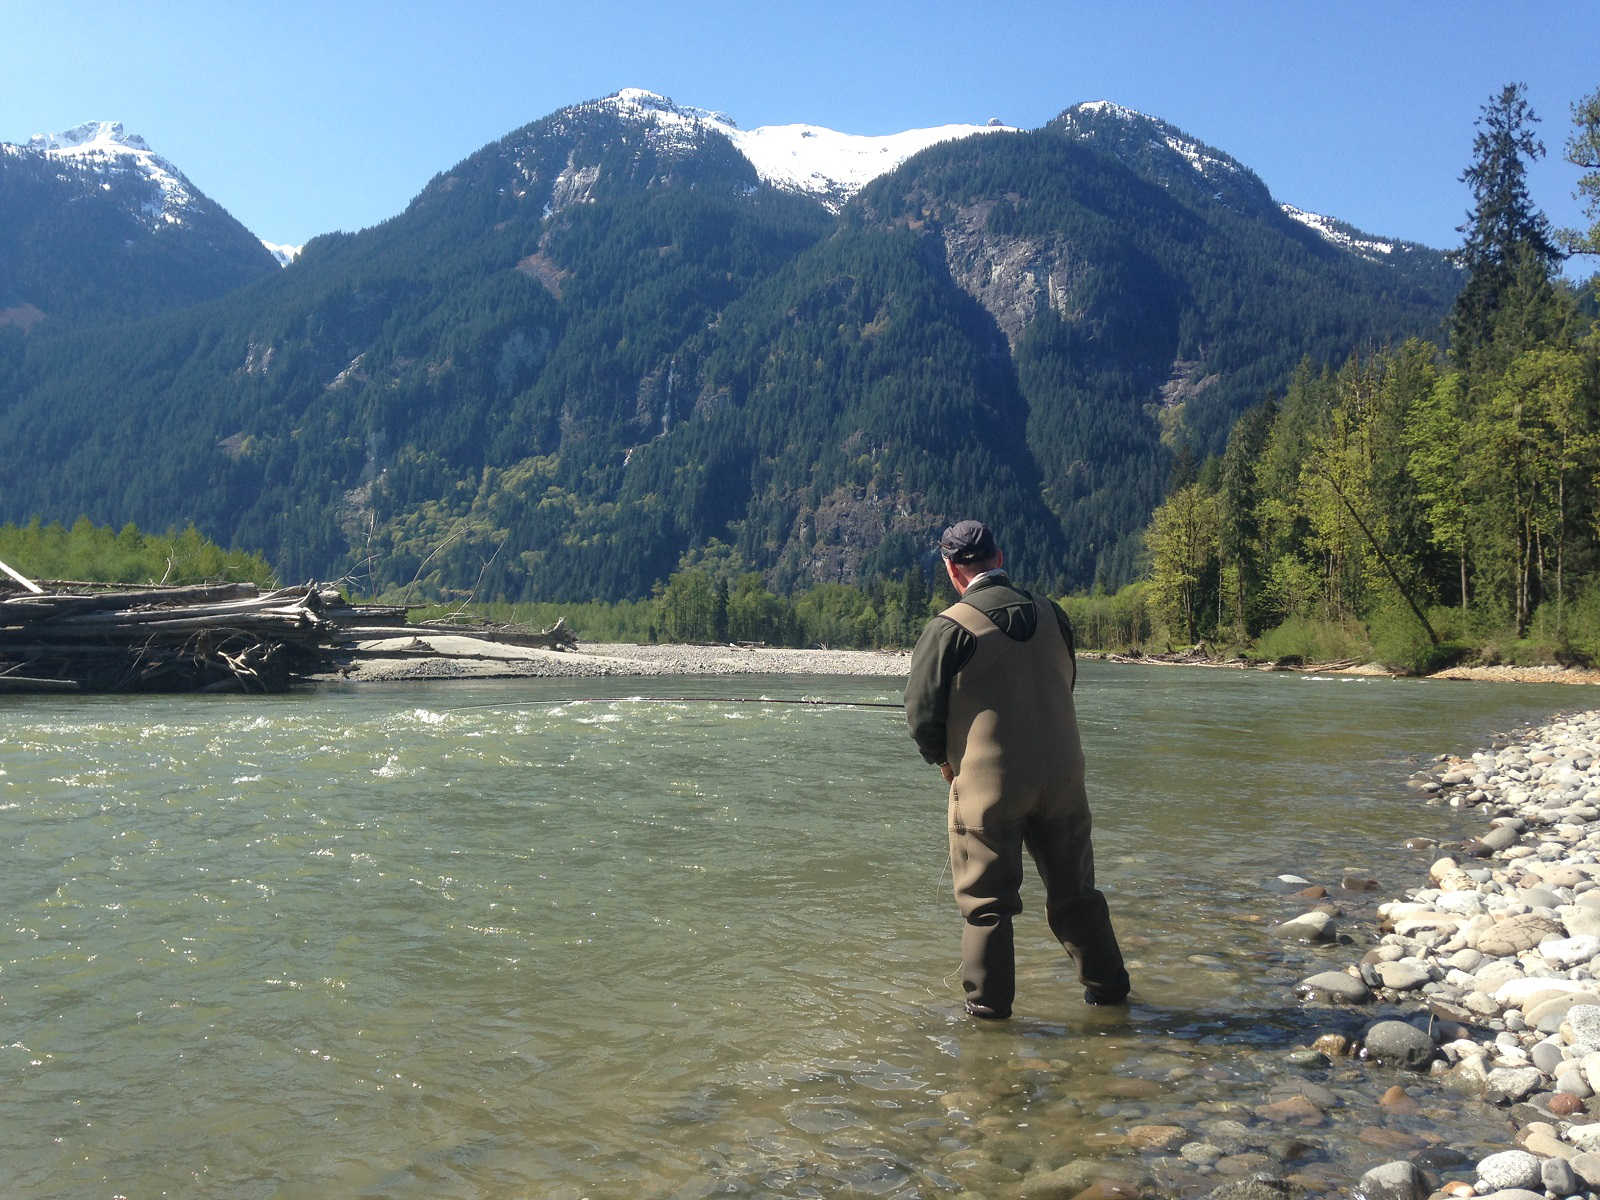 fly fishing vancouver, best fly fishing, best fly fishing spots, top fly fishing, best bc fly fishing, best fly fishing places